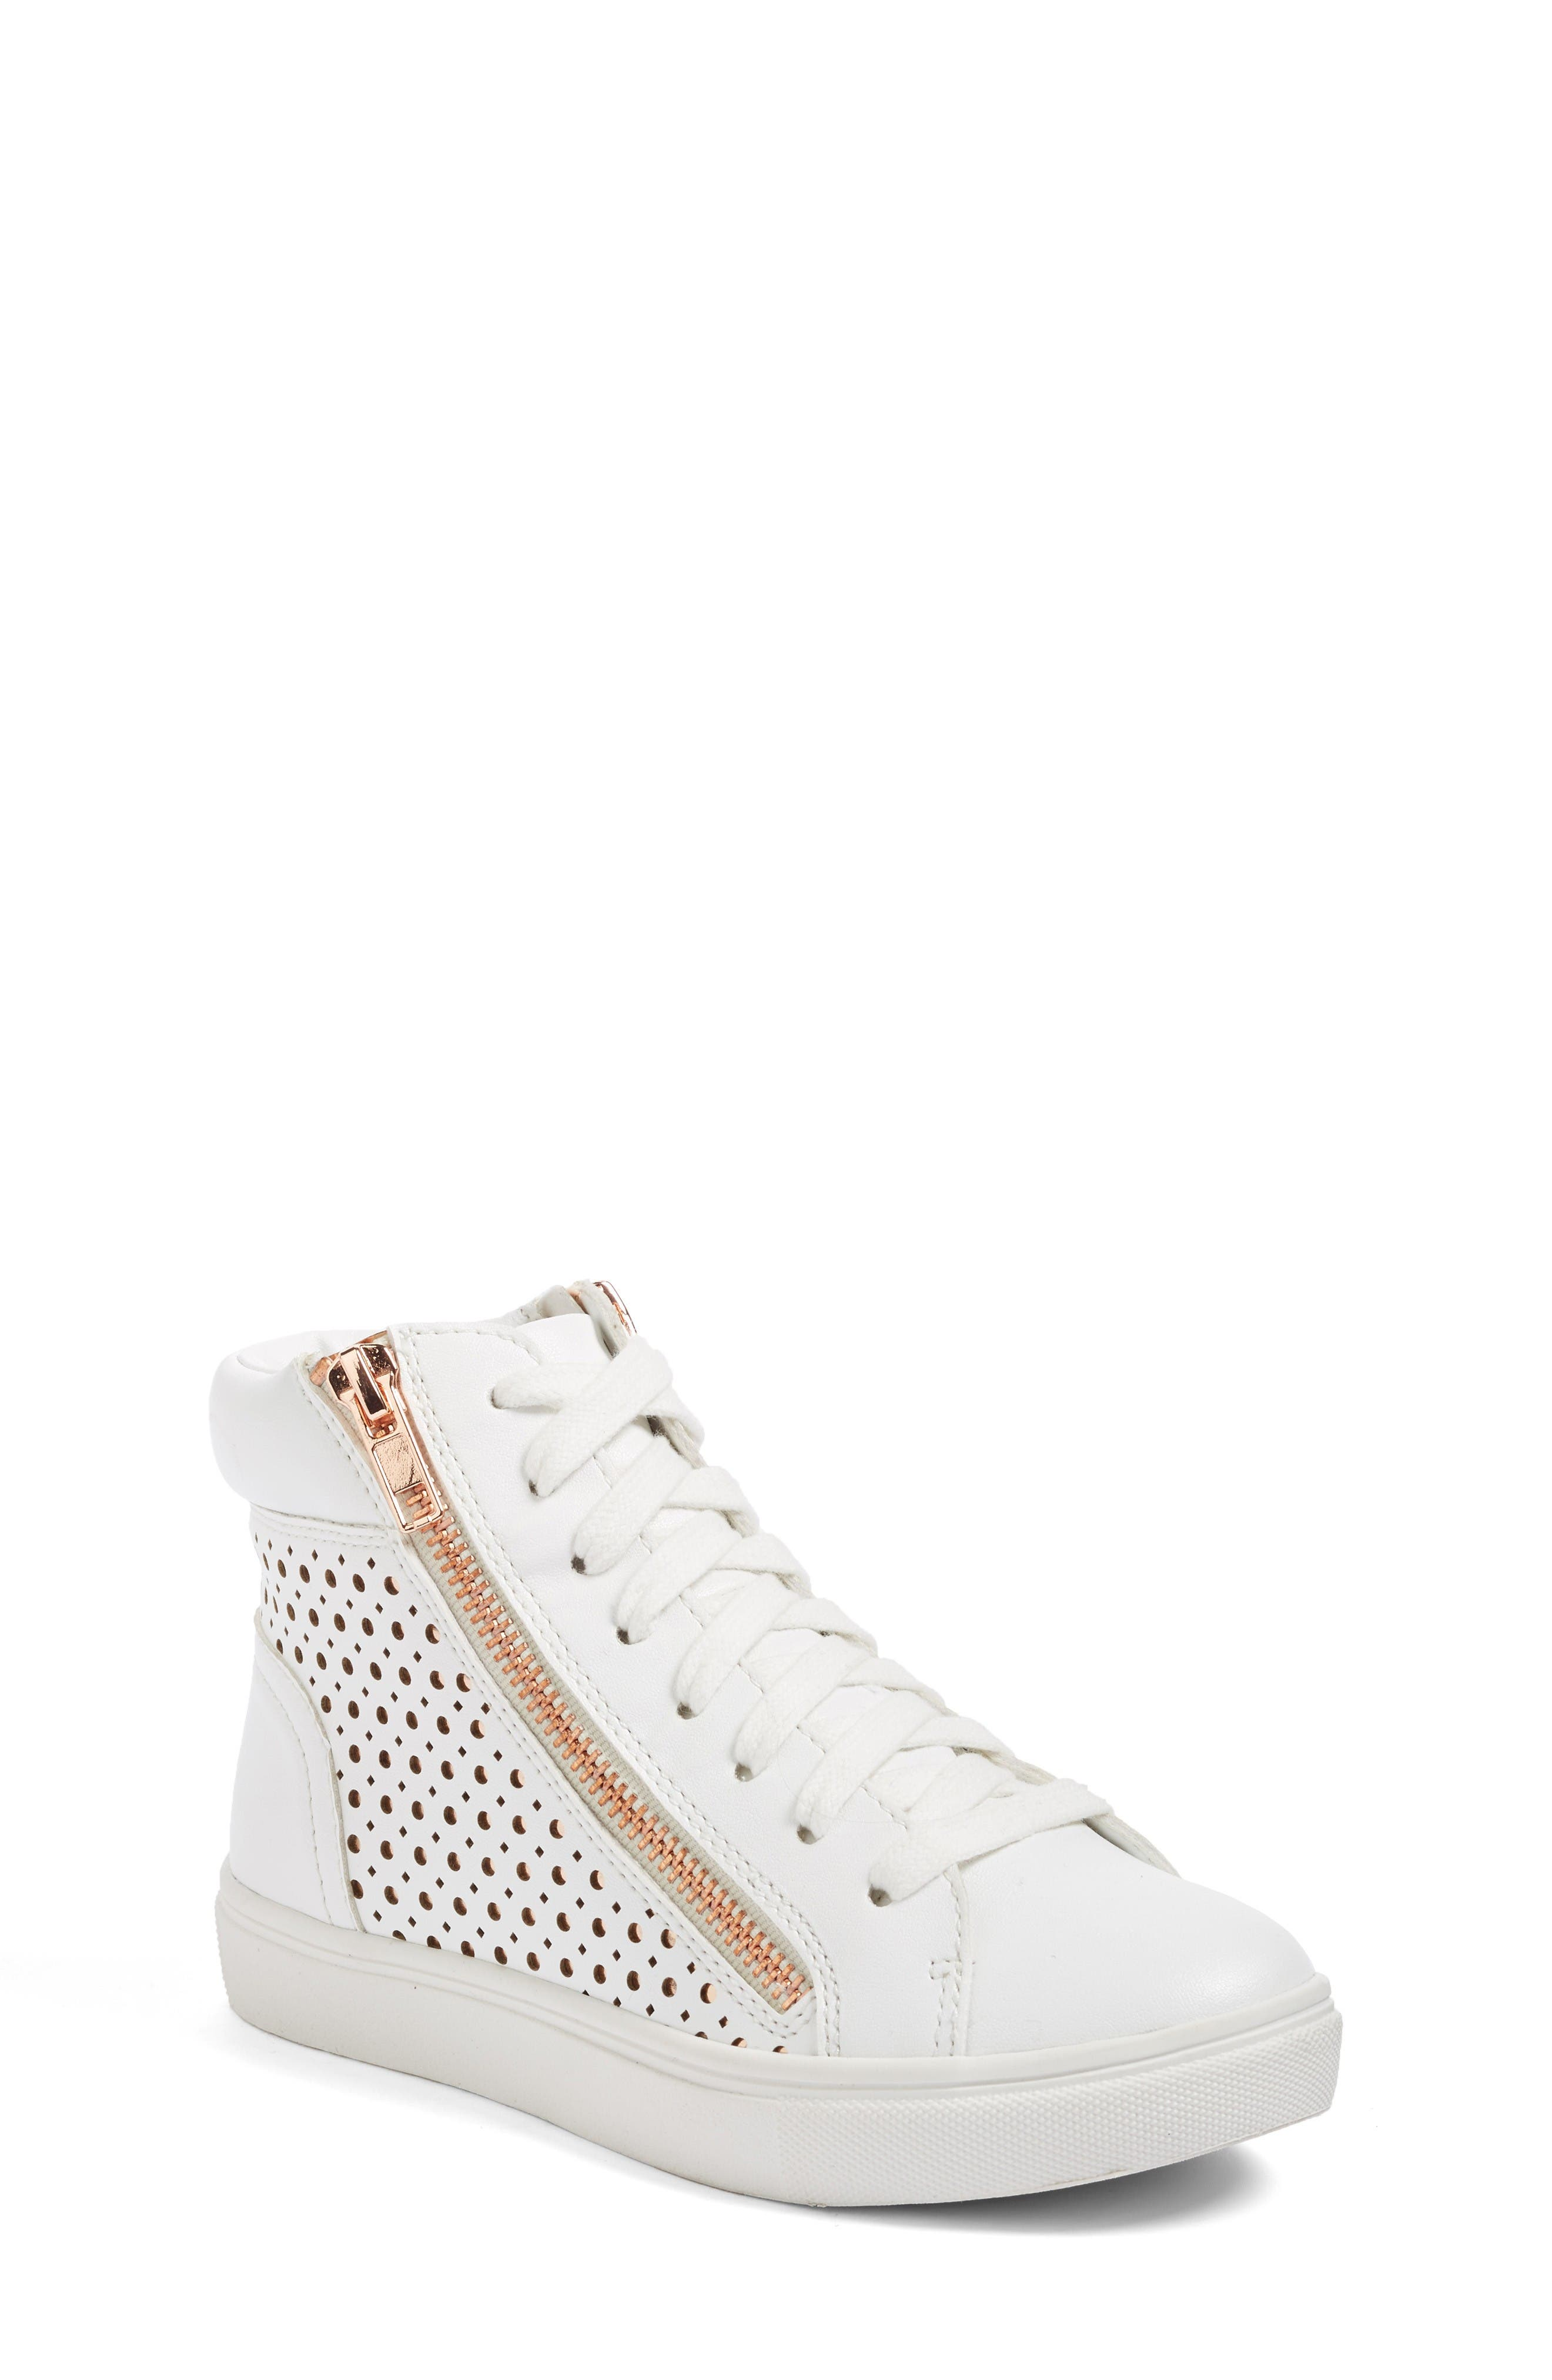 STEVE MADDEN Elkya High Top Sneaker